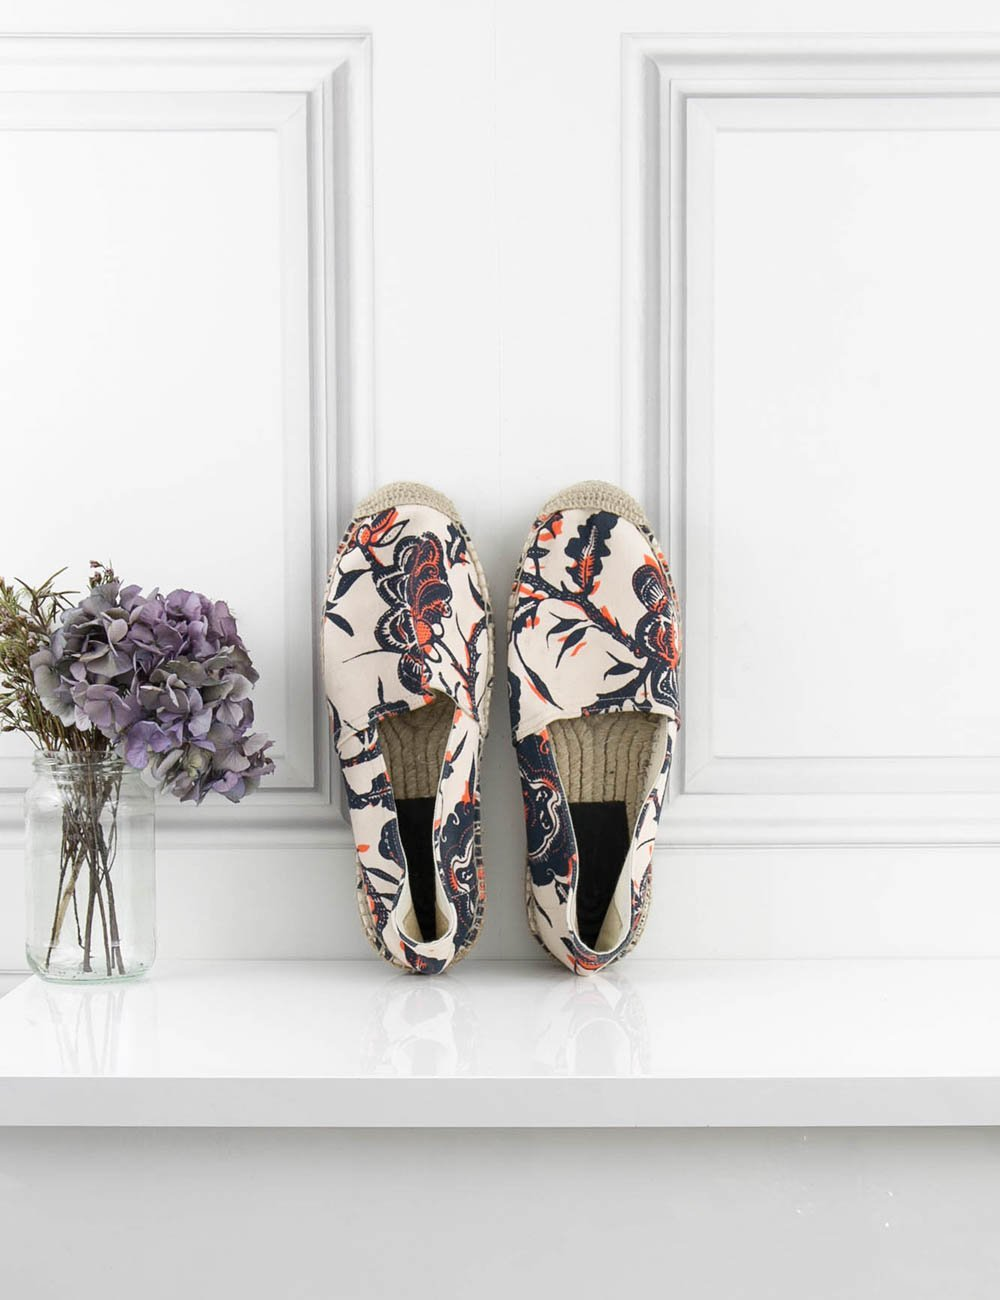 ISABEL MARANT SHOES Neon Printed Cotton Espadrilles- My Wardrobe Mistakes